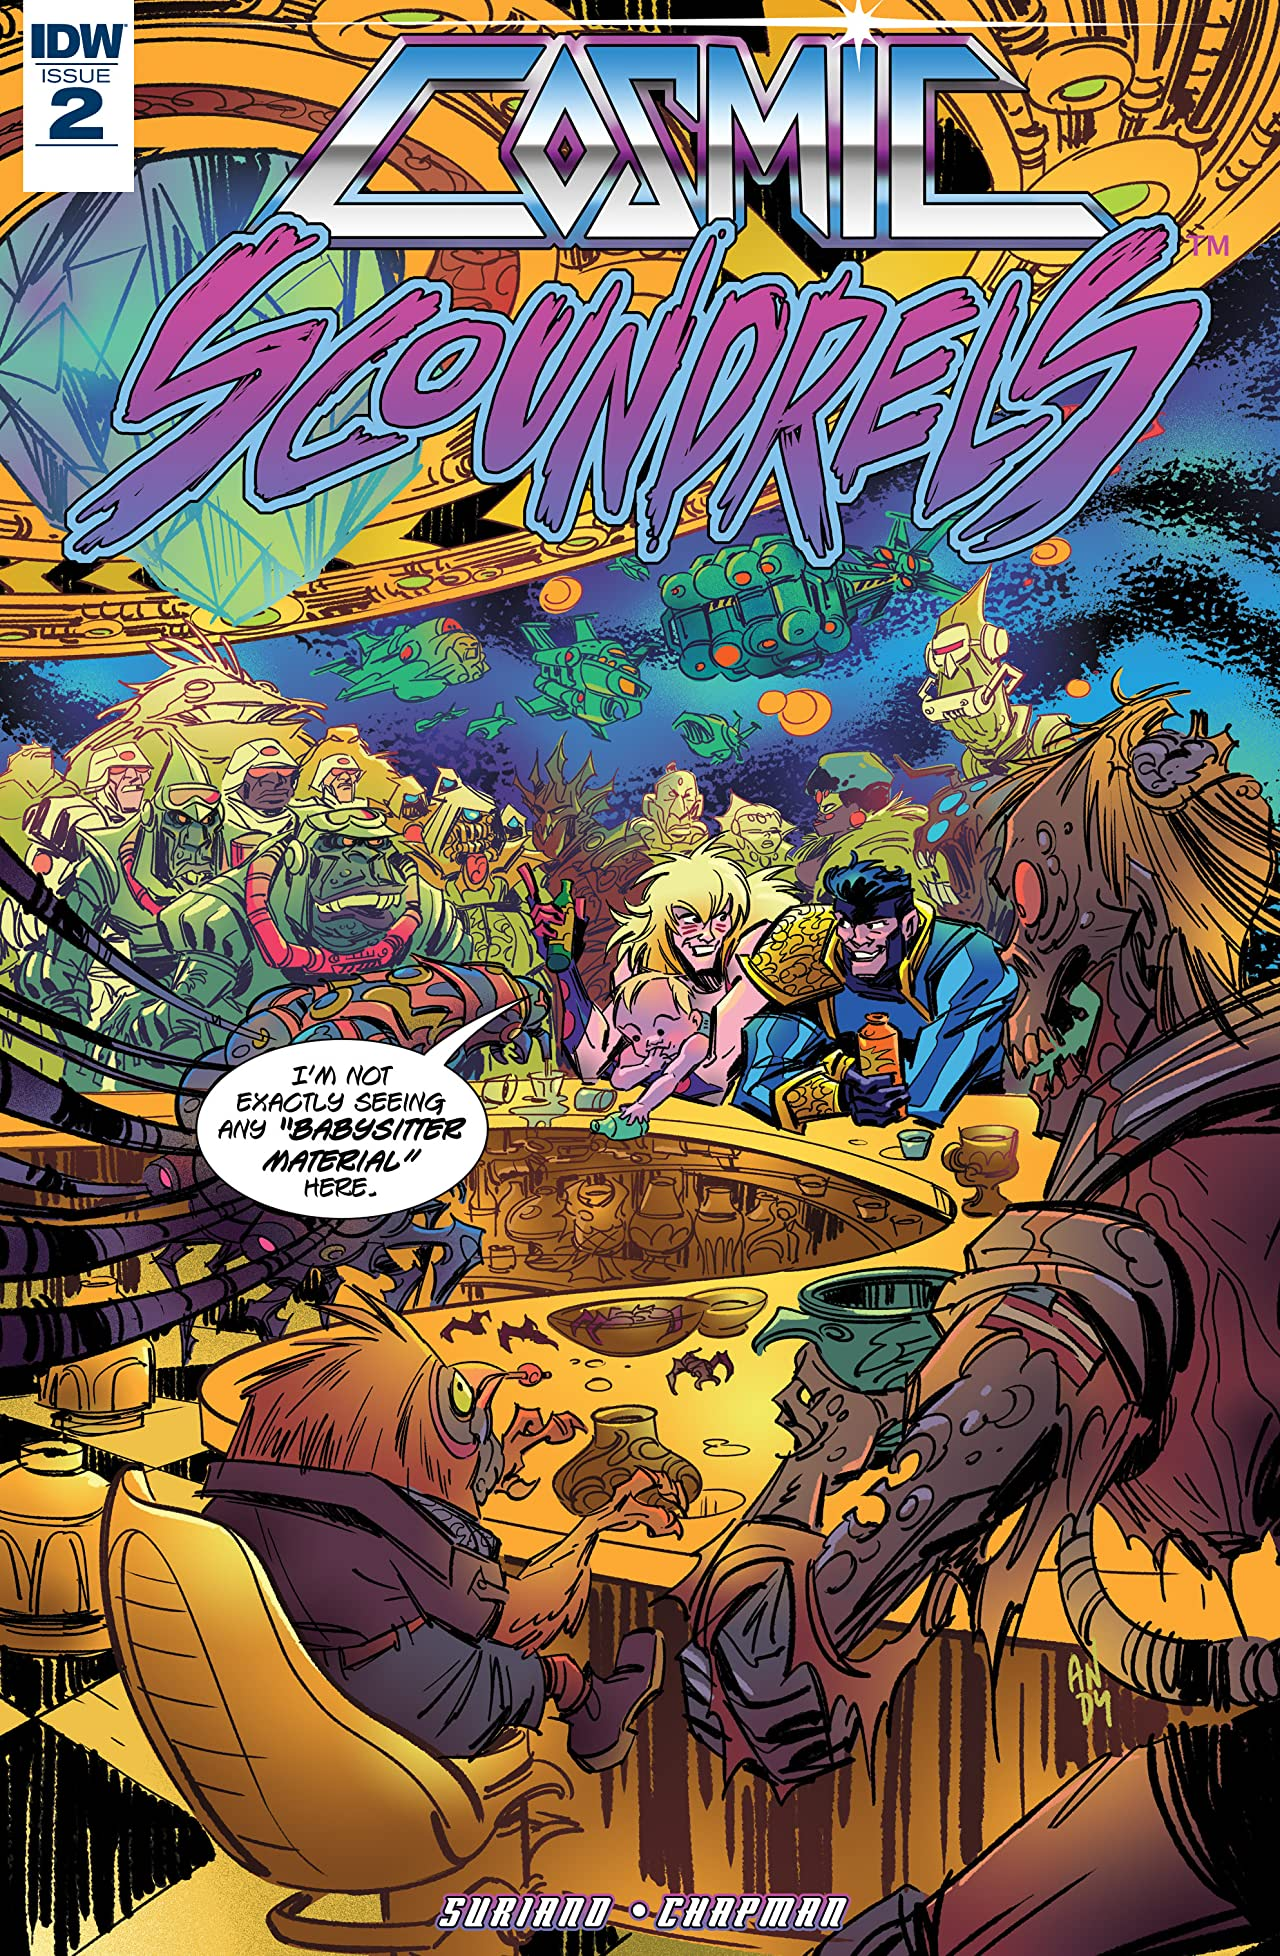 Cosmic Scoundrels #2 (of 5)